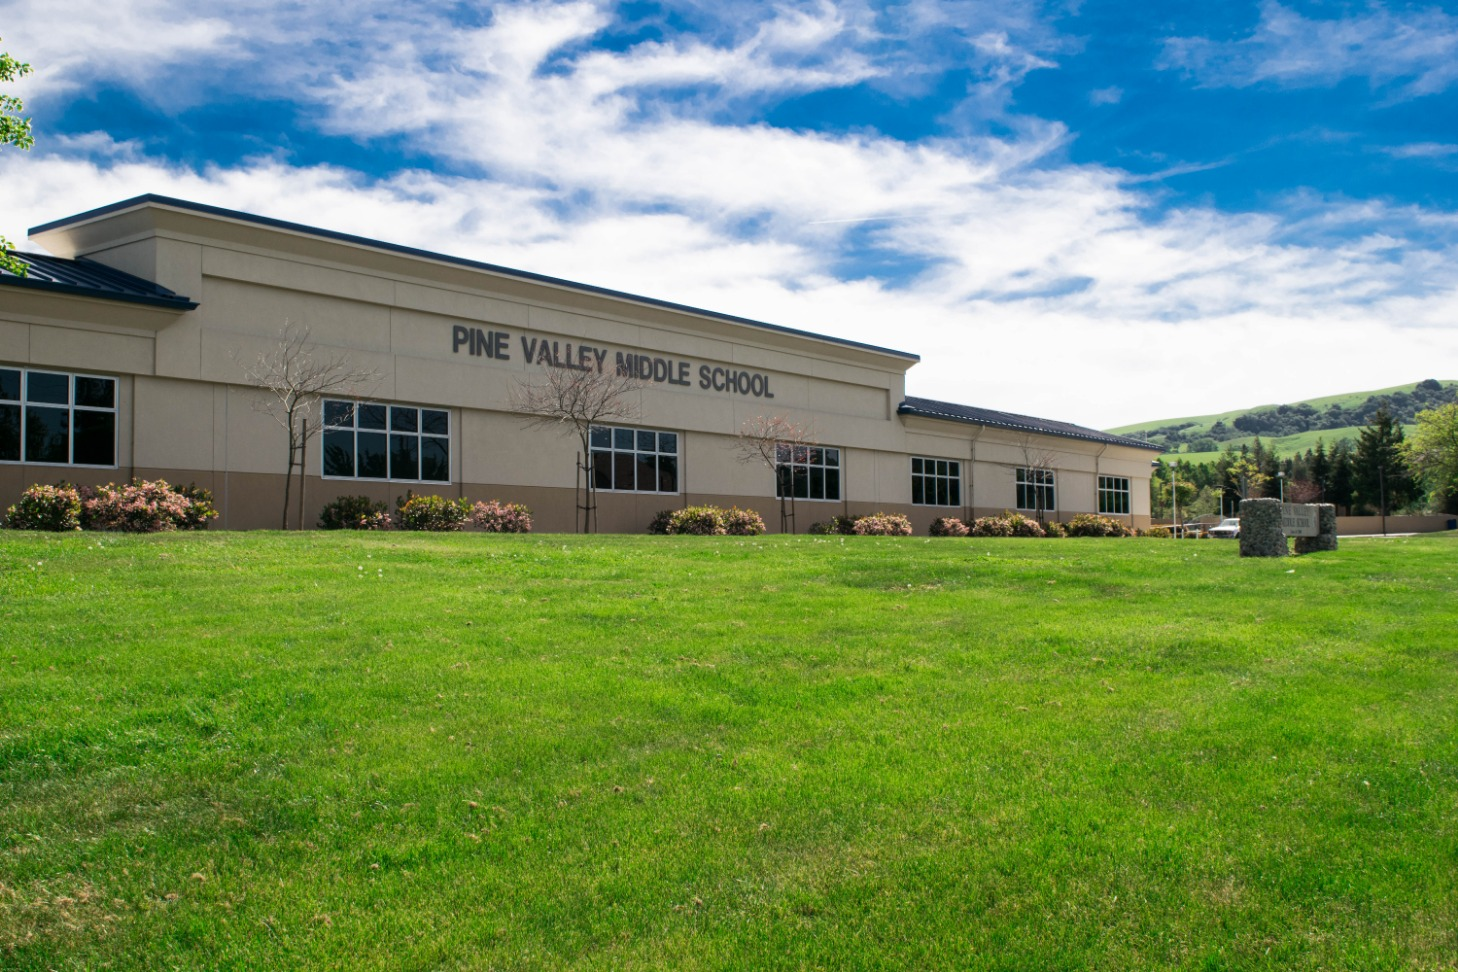 Pine Valley Middle School